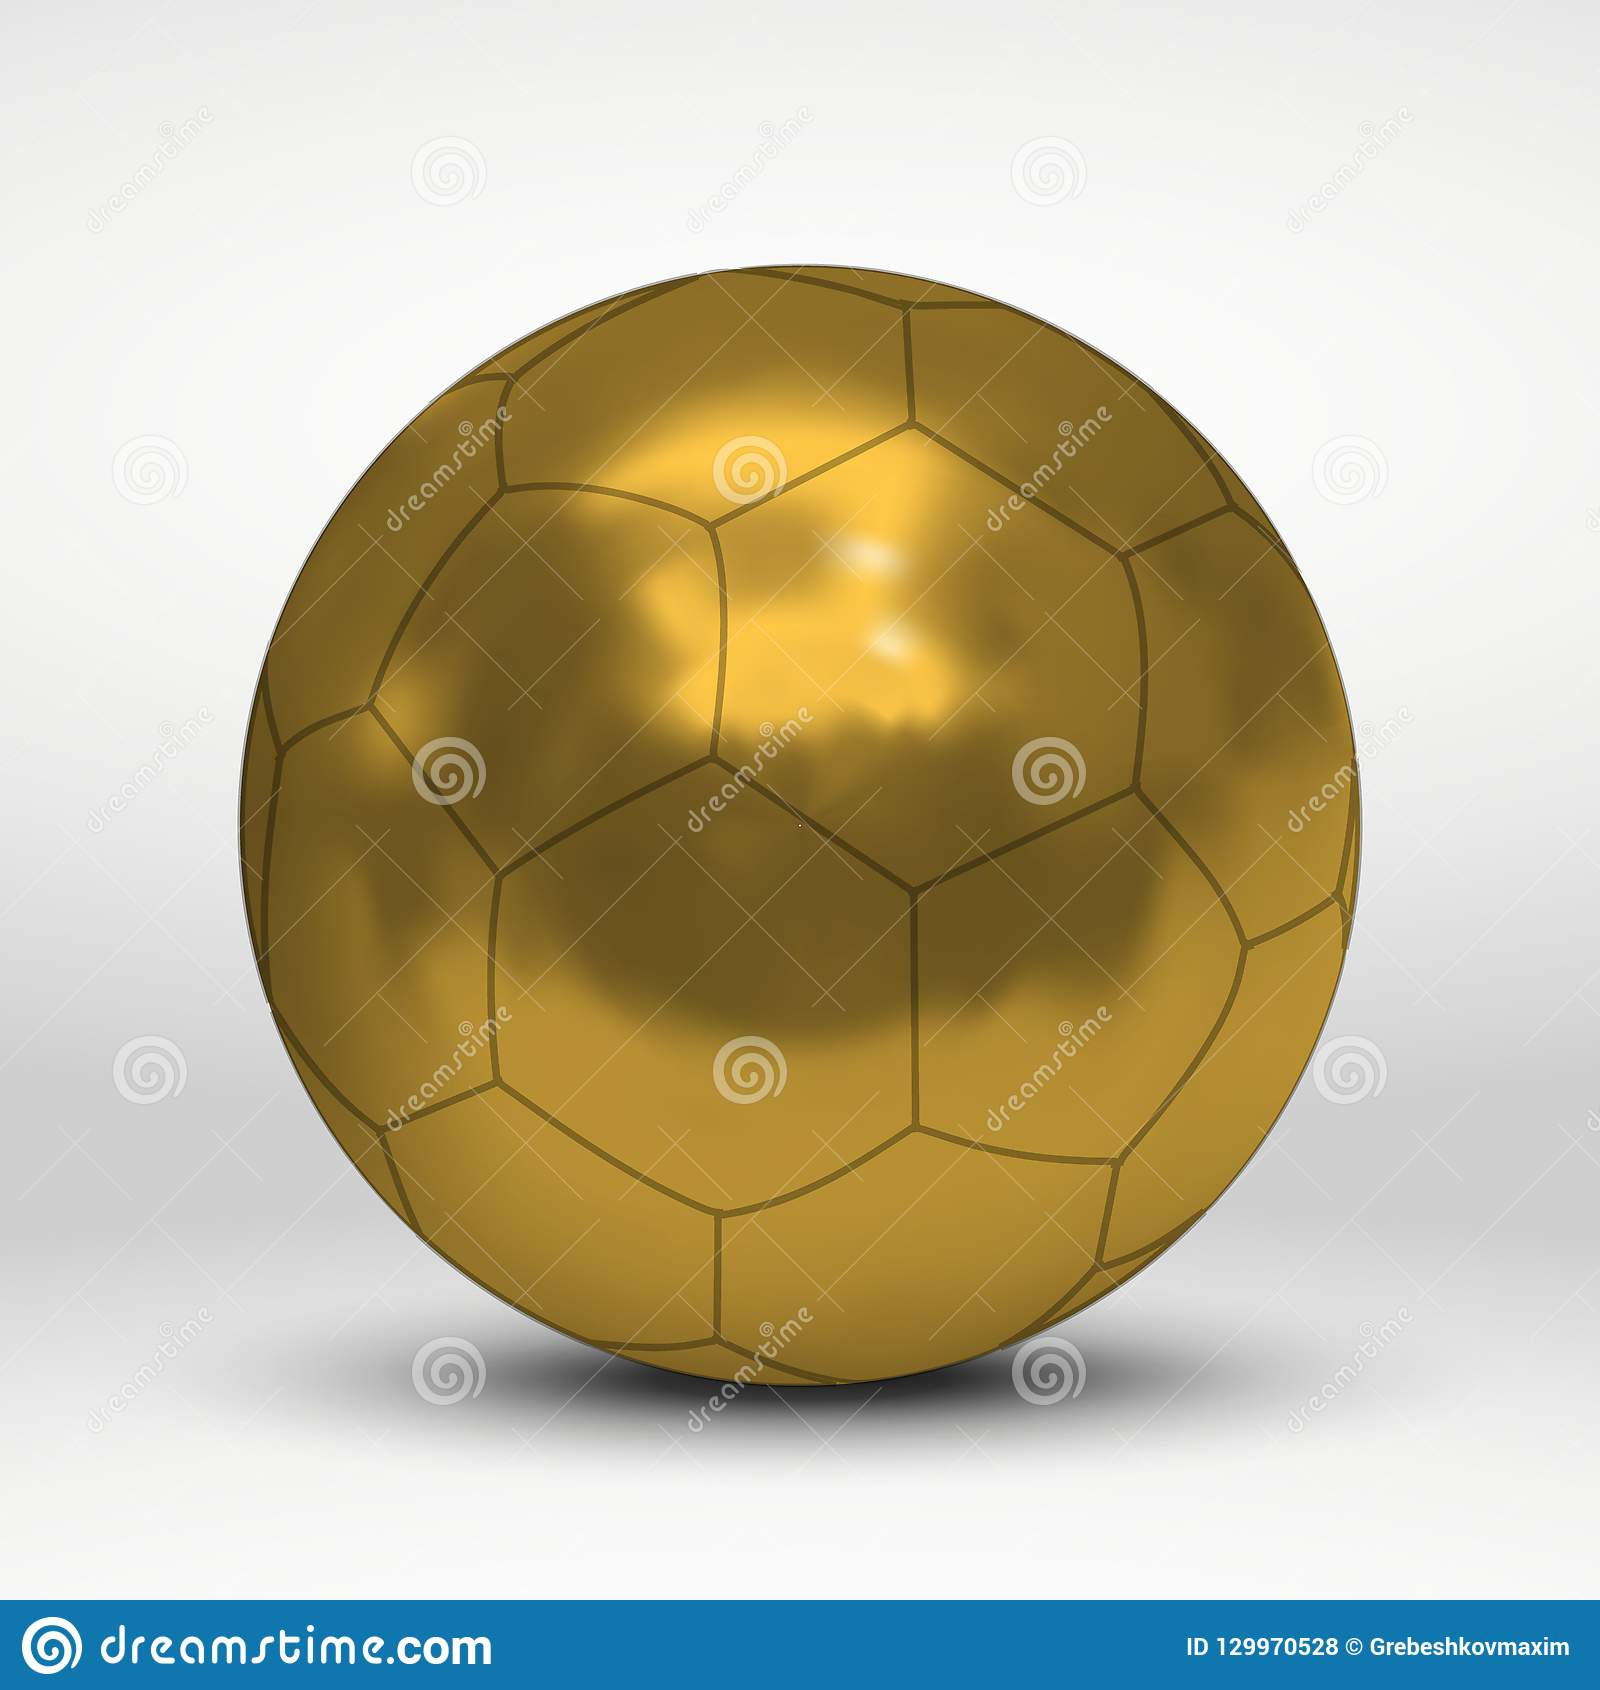 8cfd7f7ea Vector illustration with golden soccer ball over white background